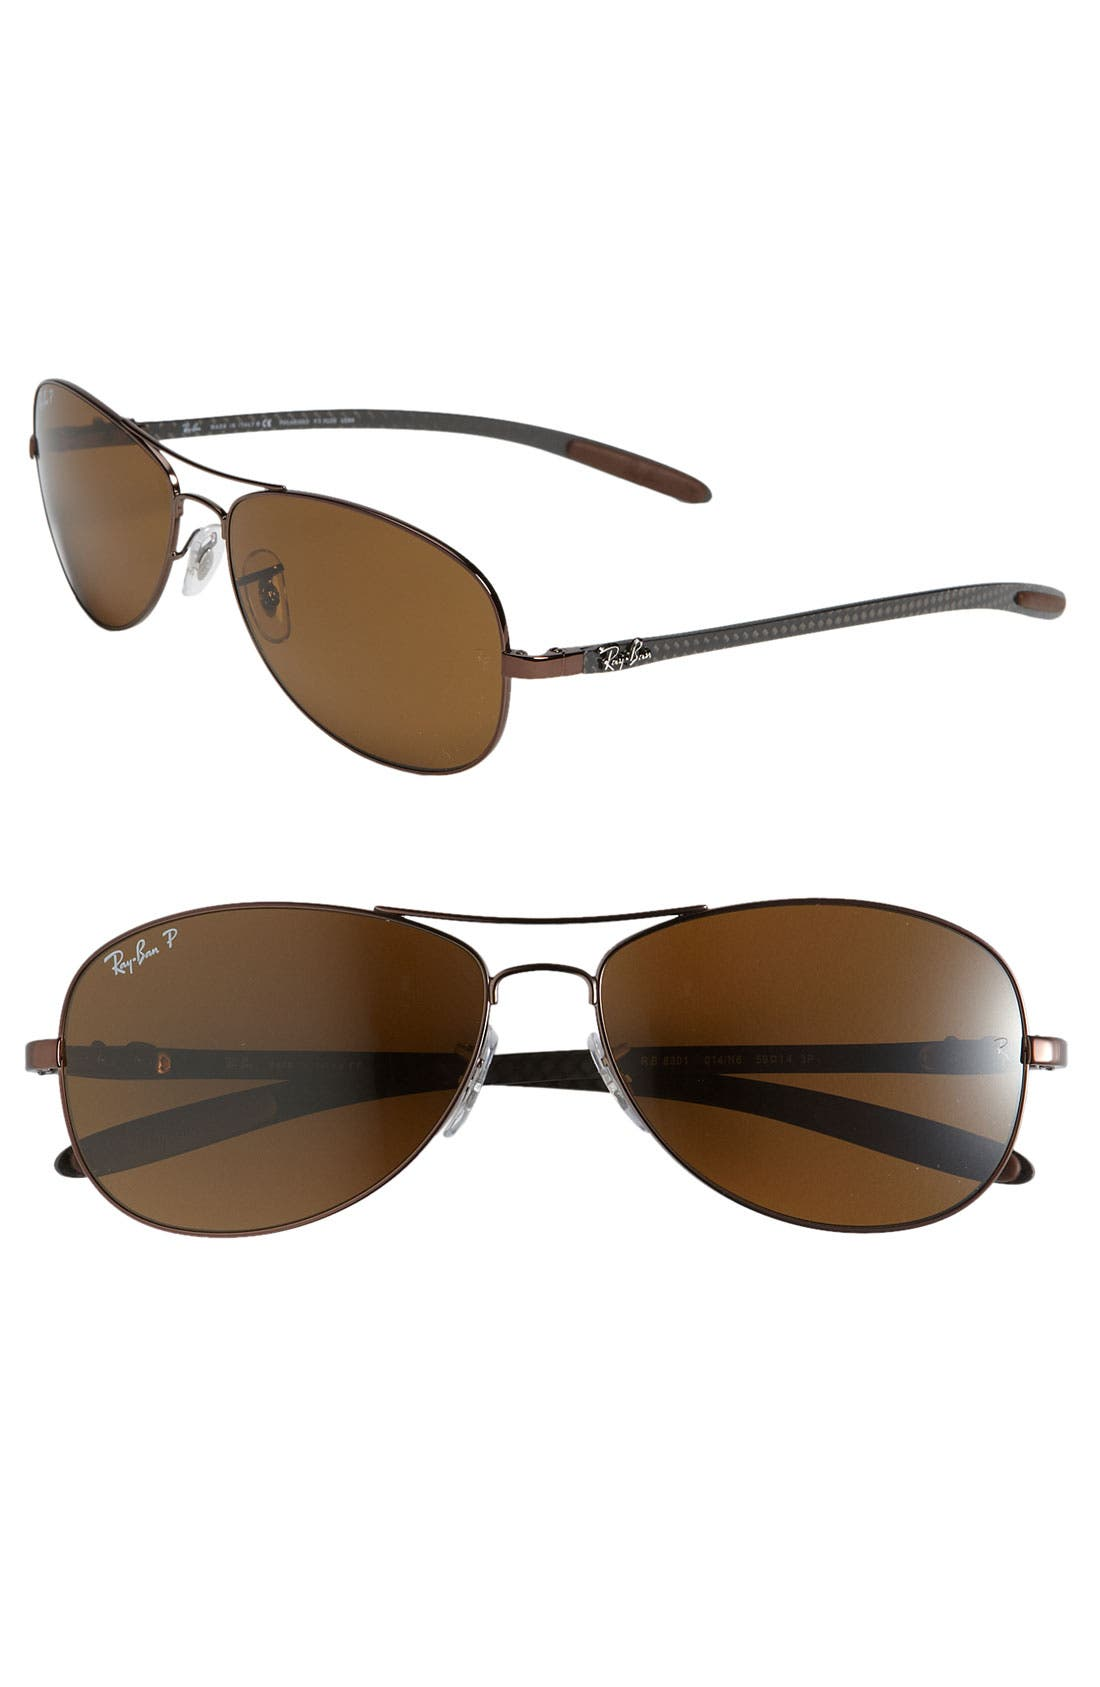 Alternate Image 1 Selected - Ray-Ban 'Tech' Polarized 59mm Aviator Sunglasses